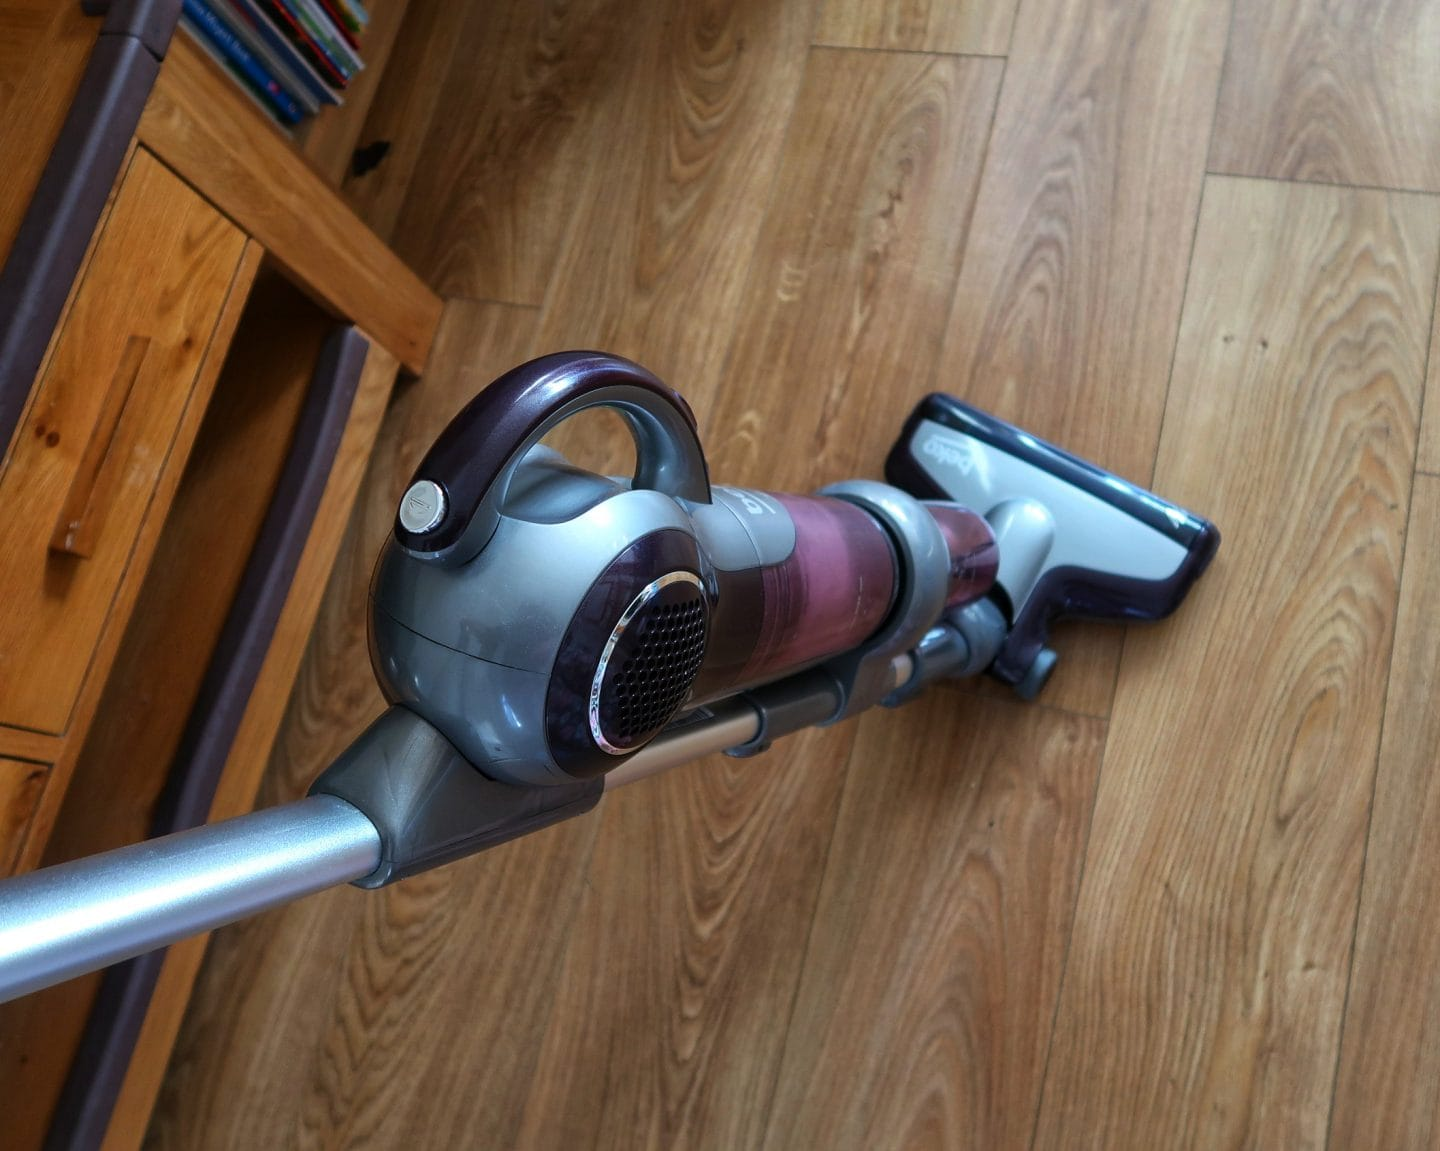 The Beko cordless vacuum in motion on a wooden floor